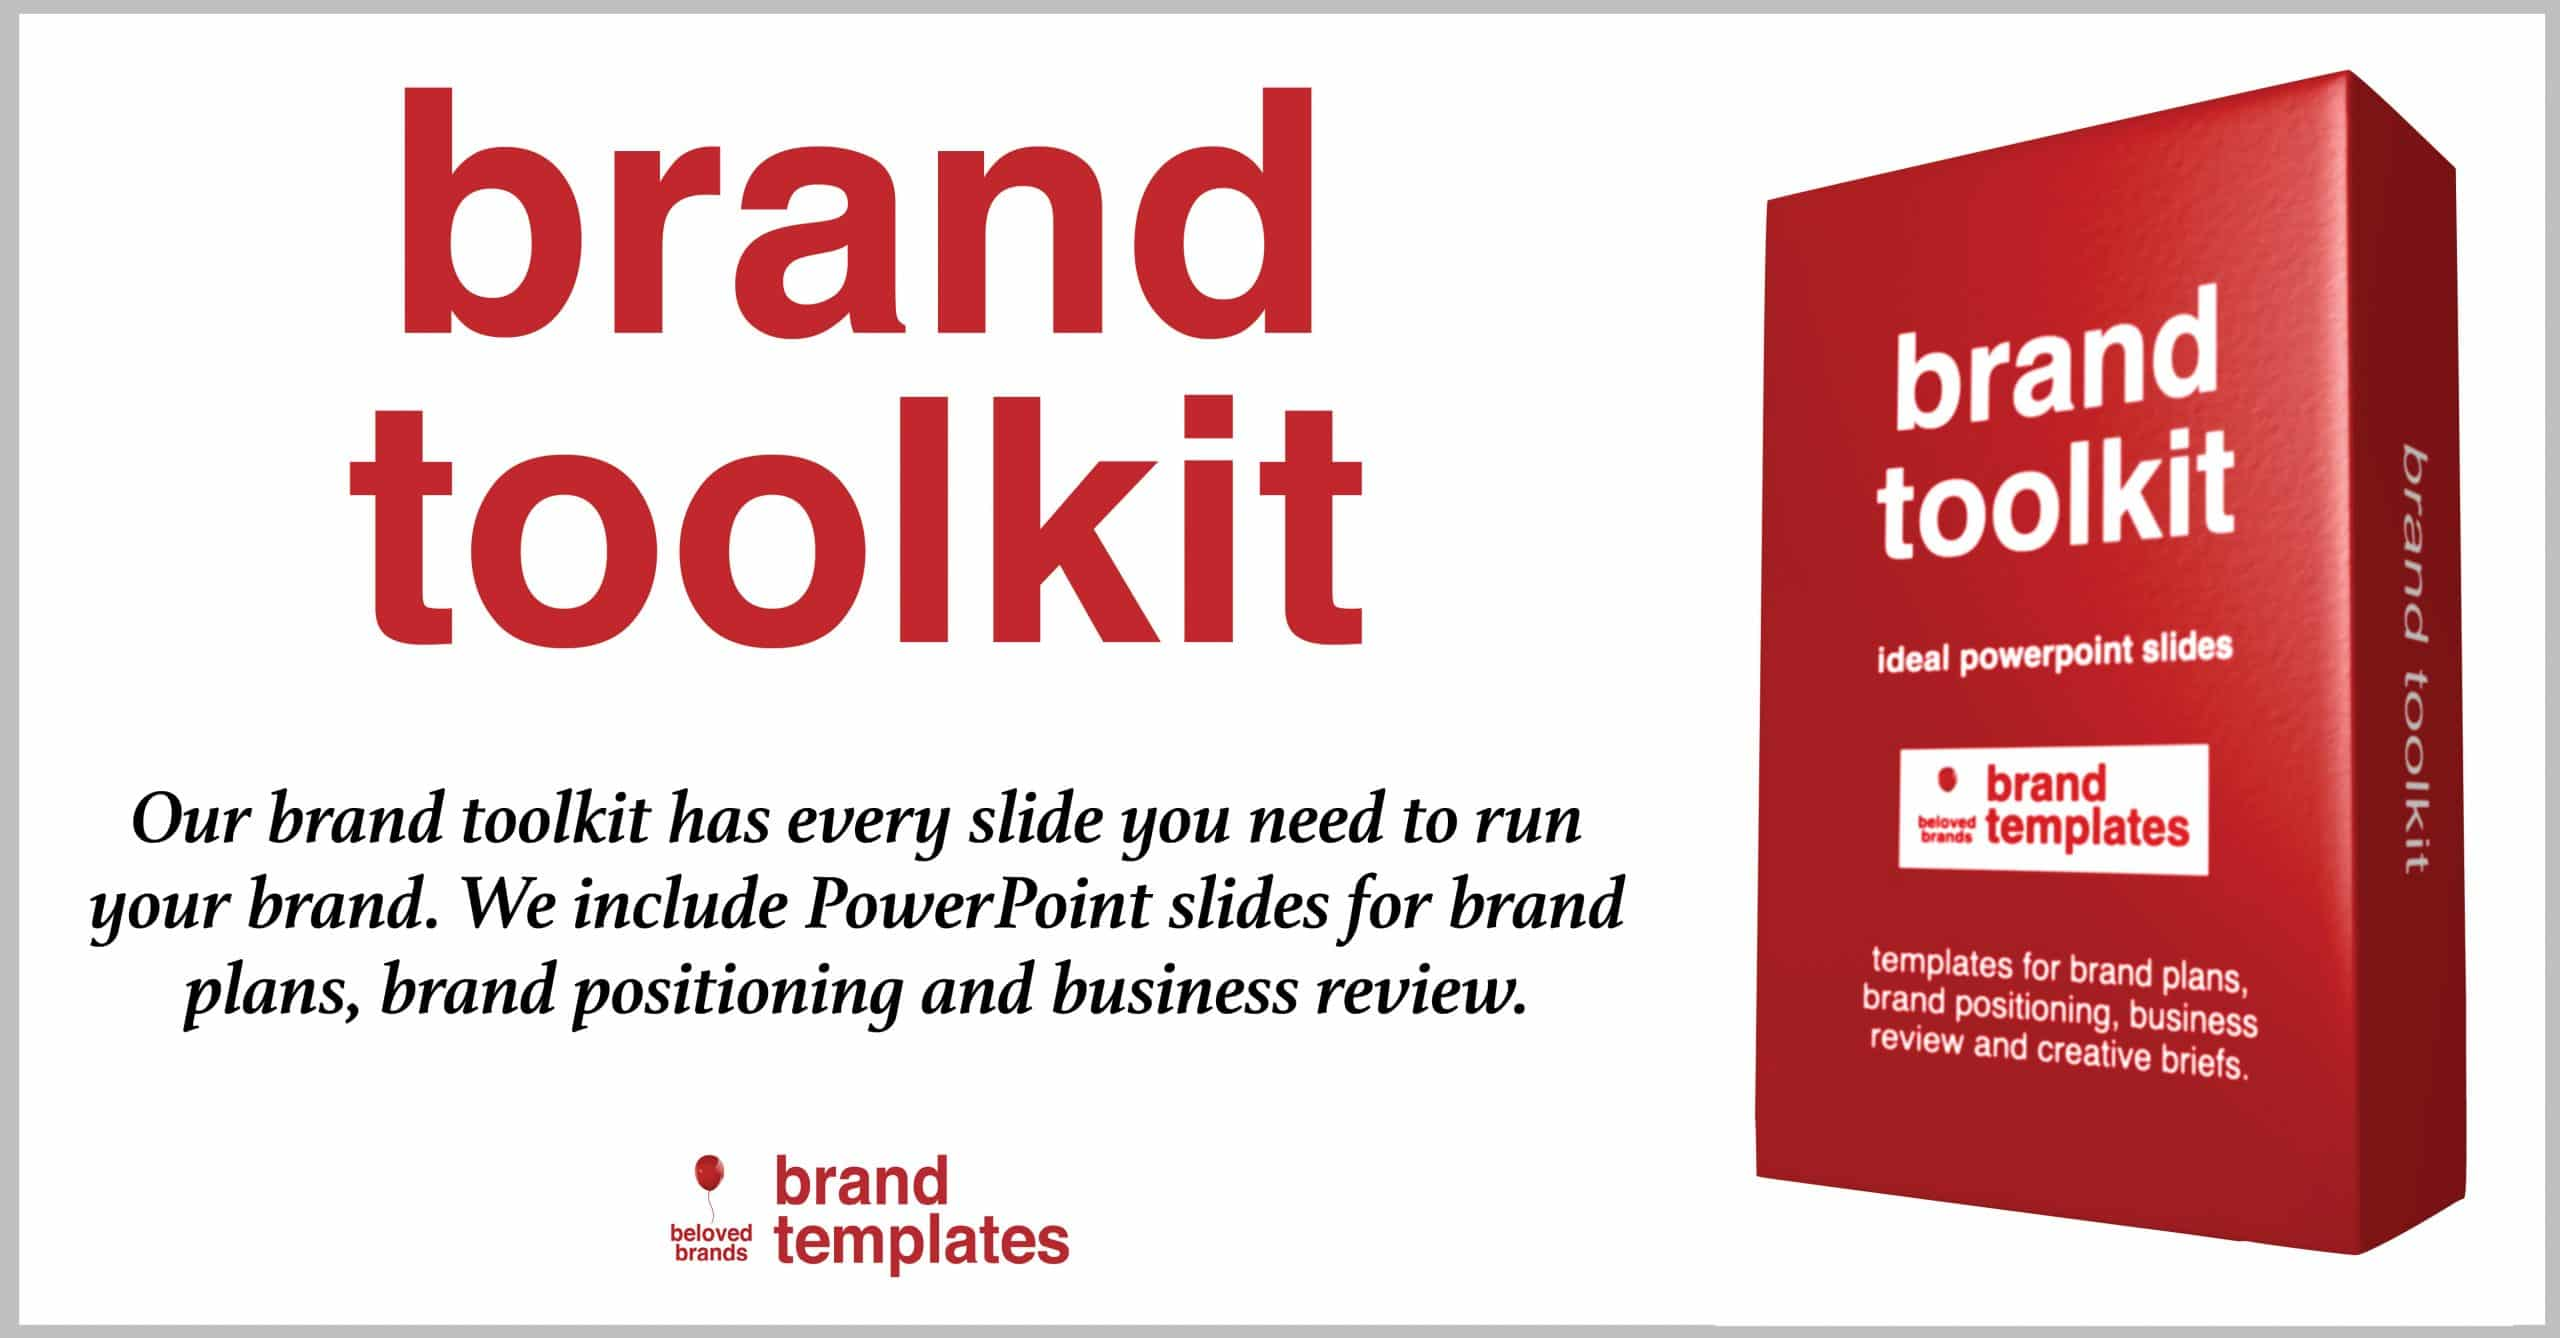 Brand Toolkit banner ad